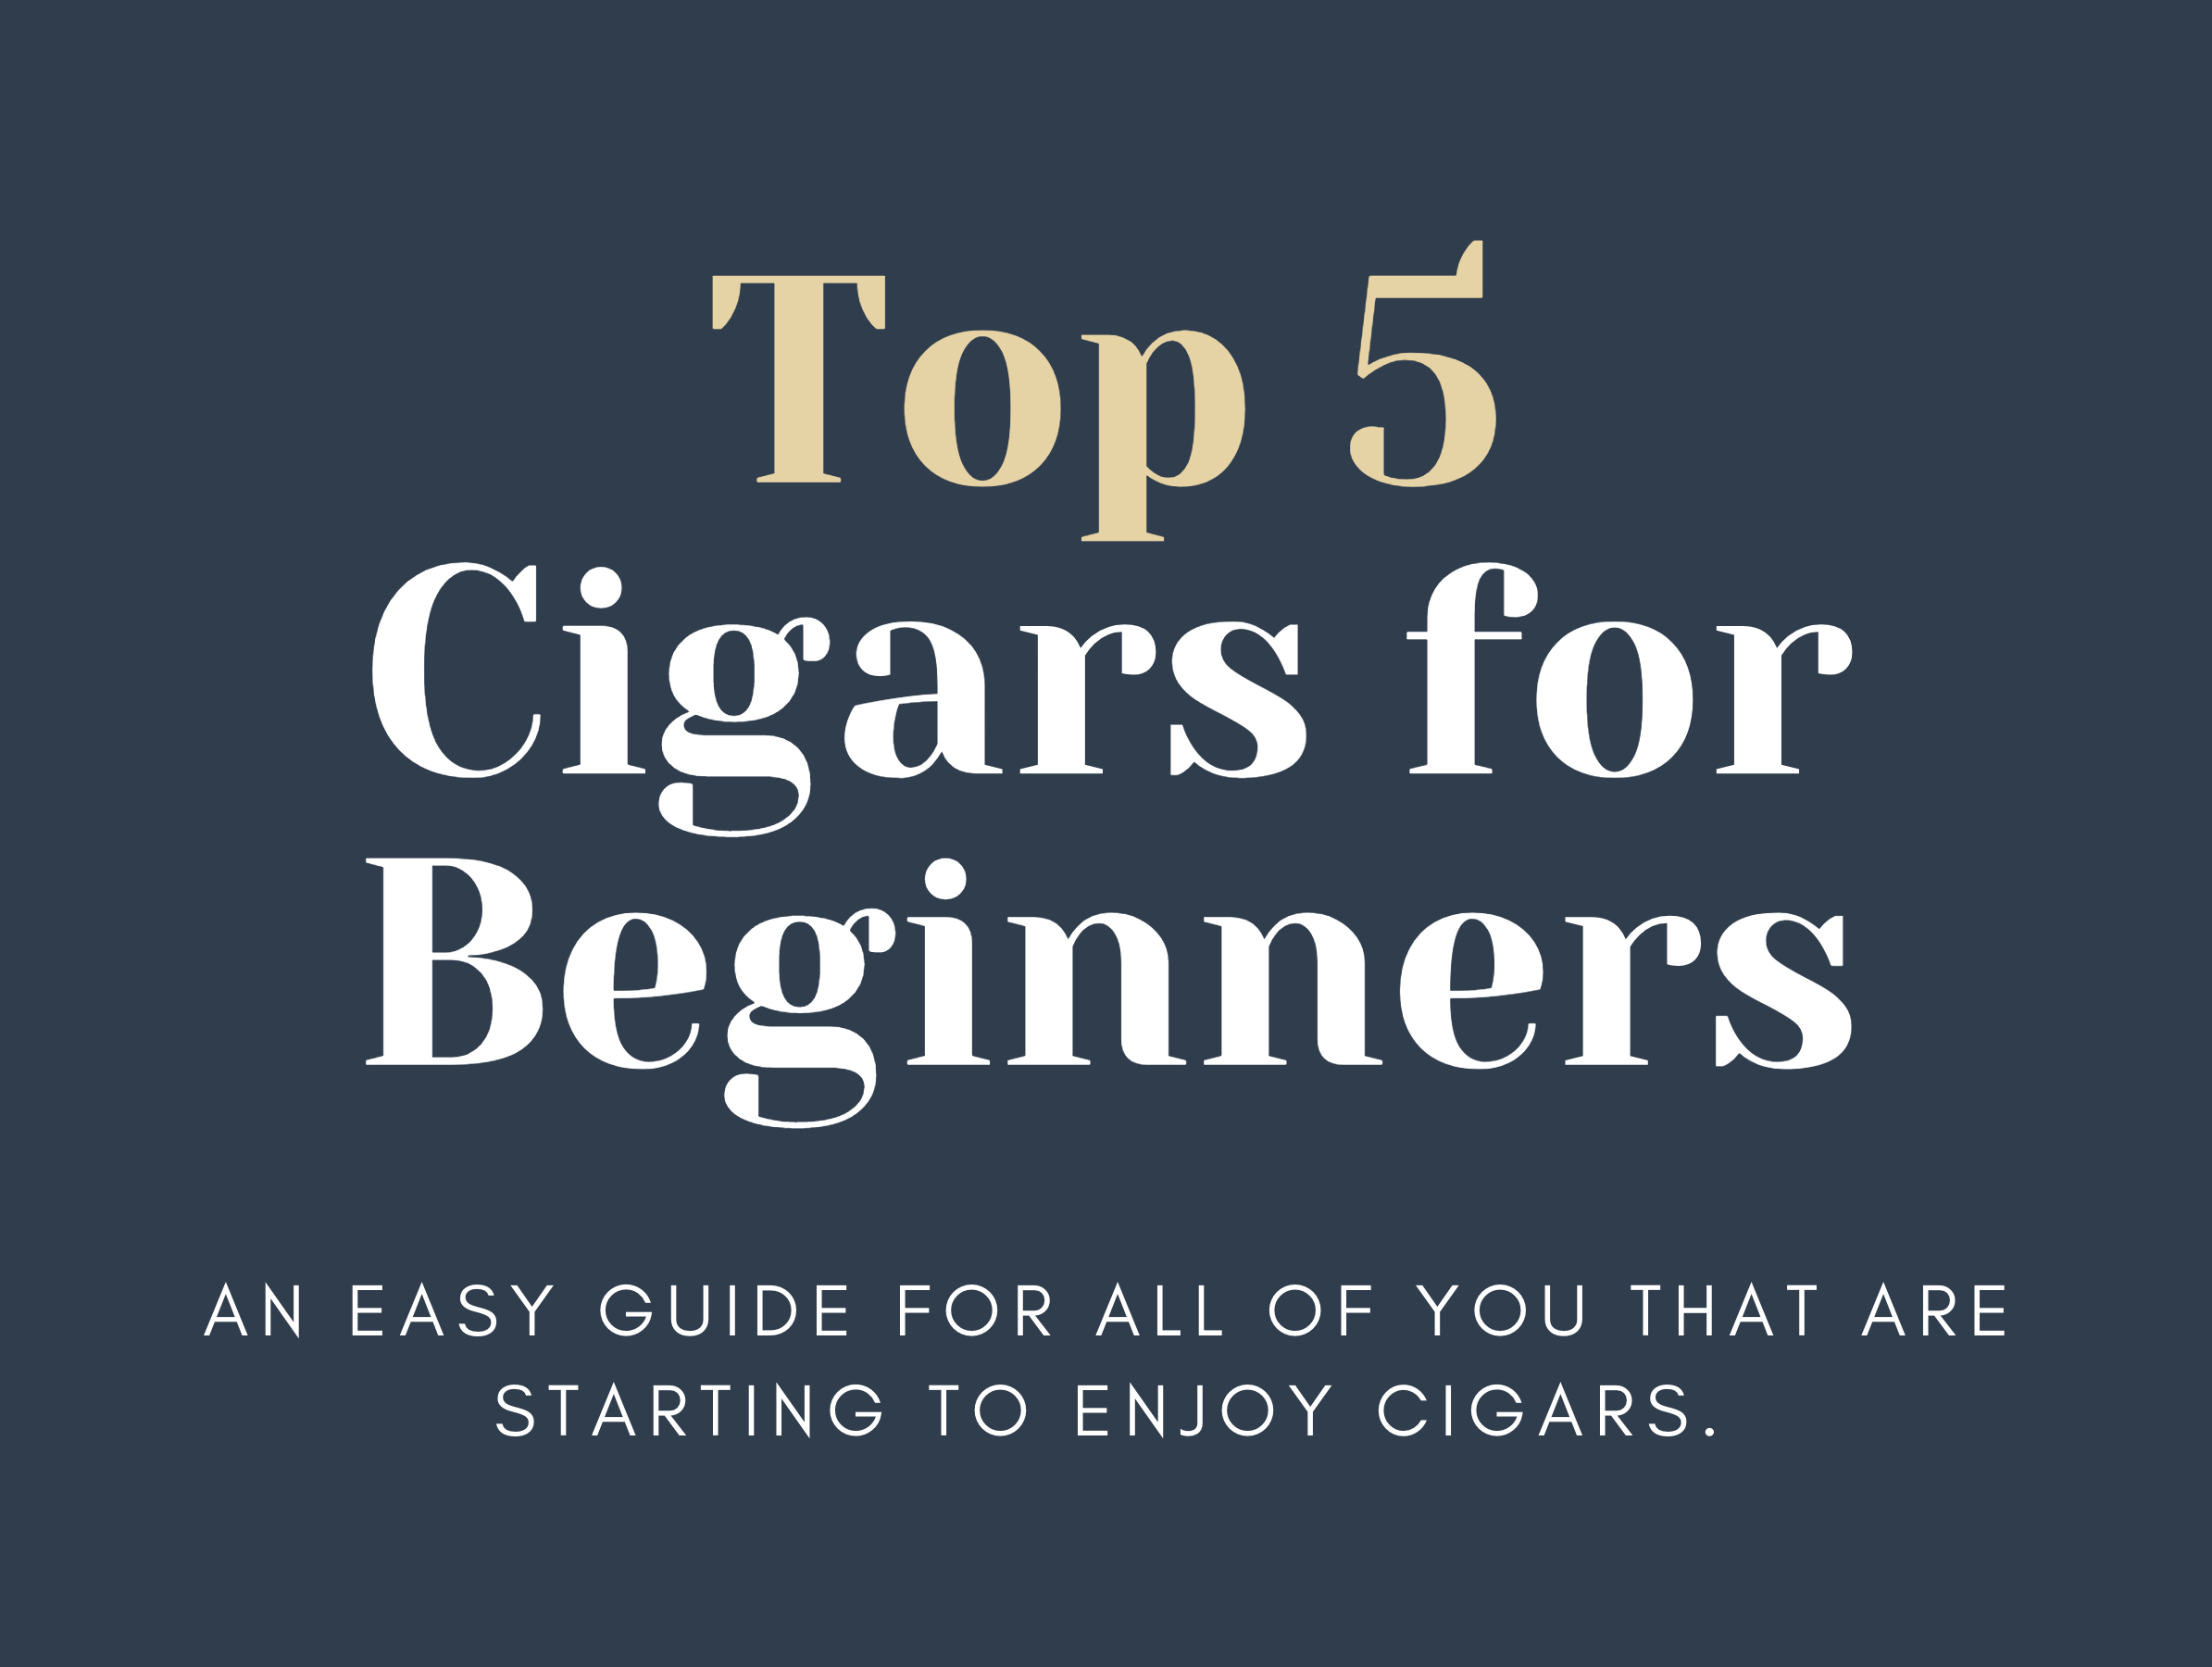 Top 5 Cigars for Beginners